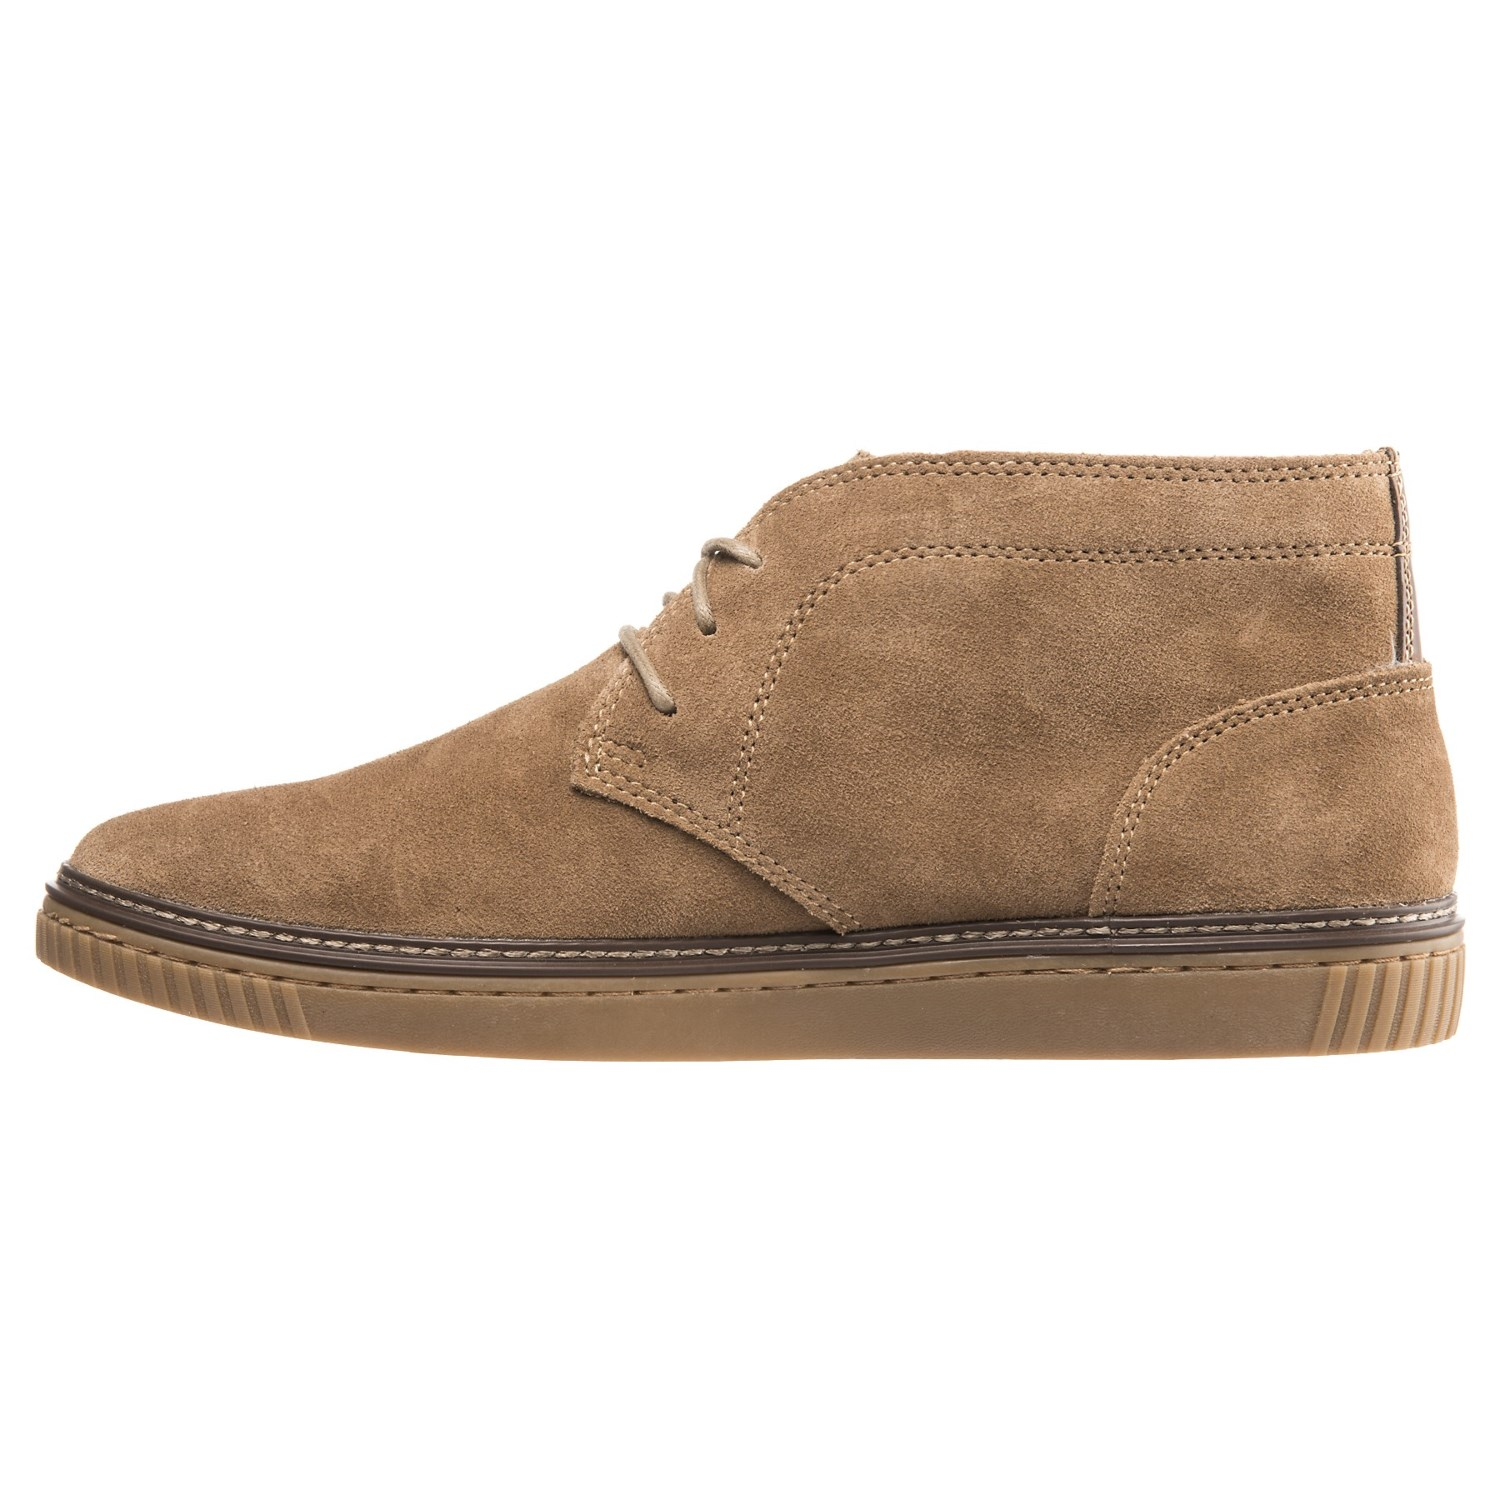 c8580c11a Johnston & Murphy Wallace Chukka Boots (For Men) - Save 52%